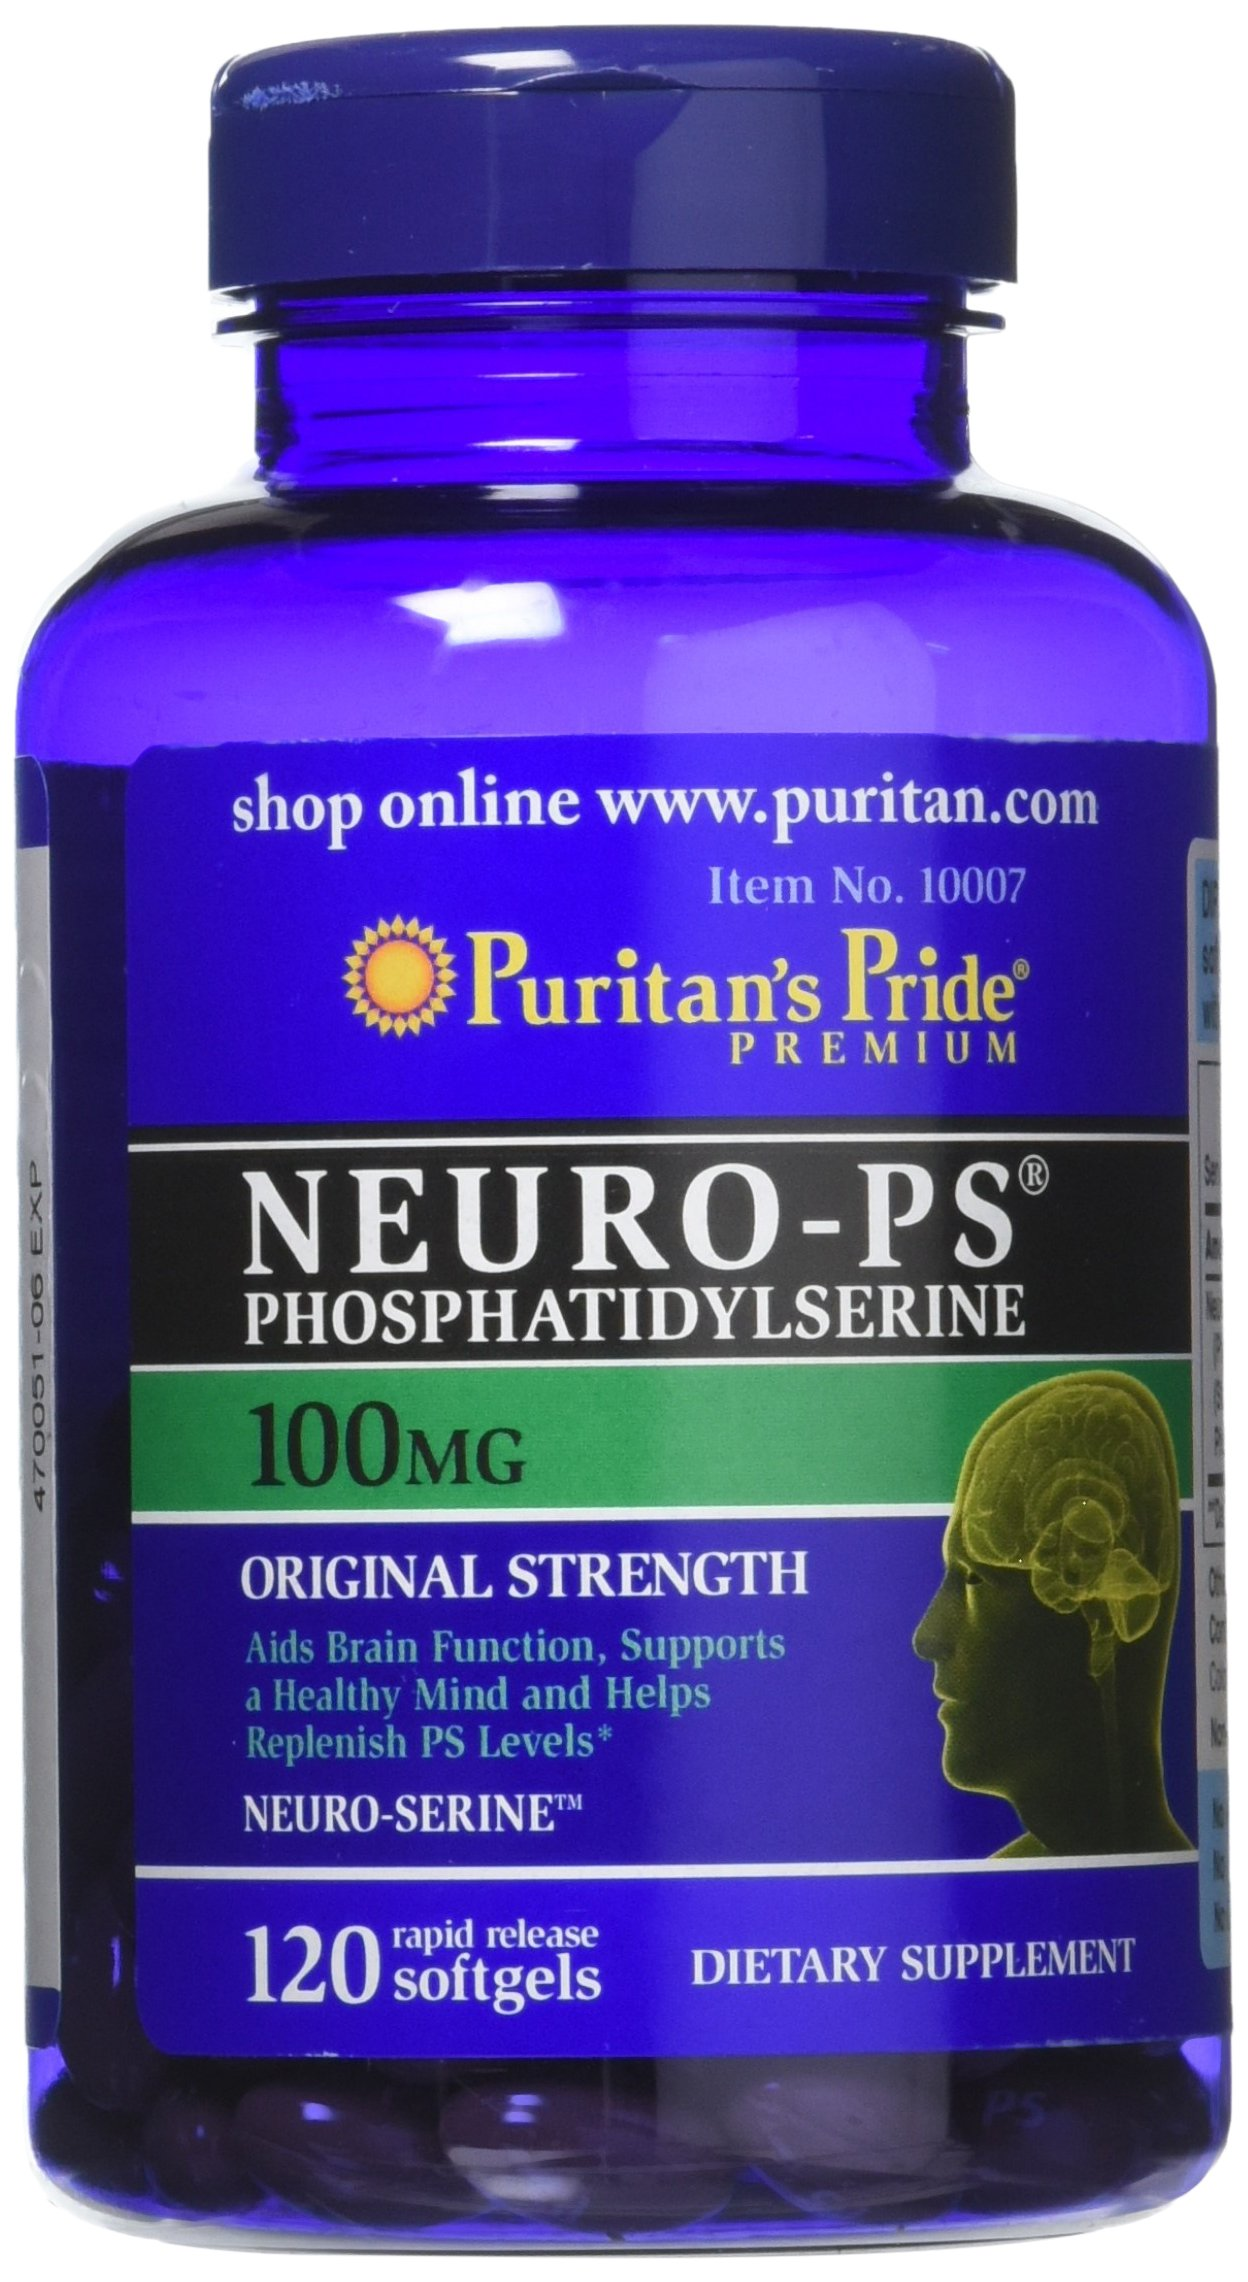 Puritans Pride Neuro Ps Gold 90 Softgels Health Puritan Triple Strength Glucosamine Chondroitin Msm Caplets Phosphatidylserine 100 Mg 120